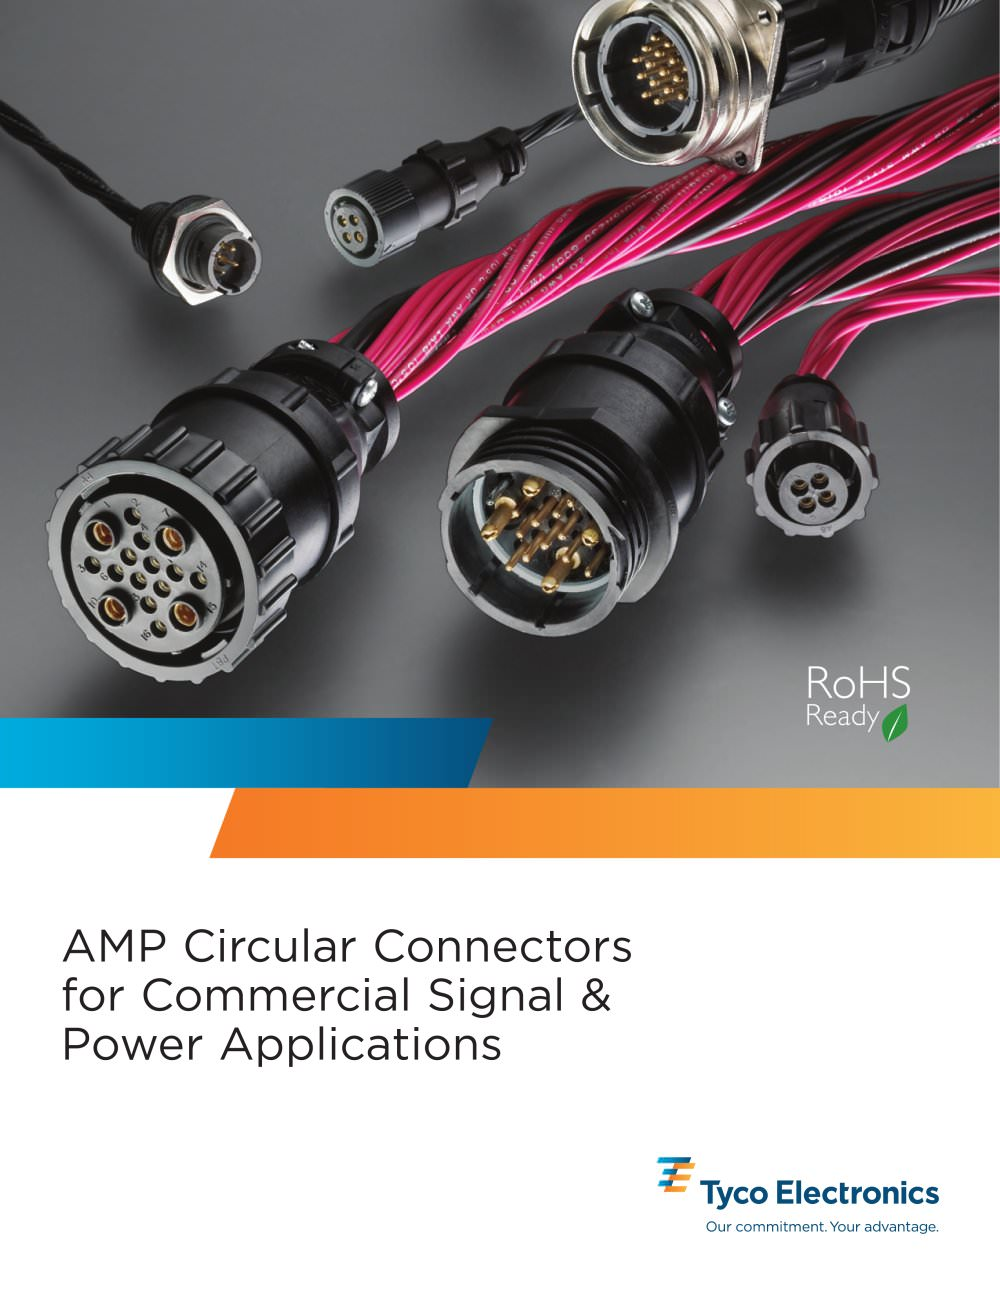 AMP Circular Connectors for Commercial Signal & Power Applications ...